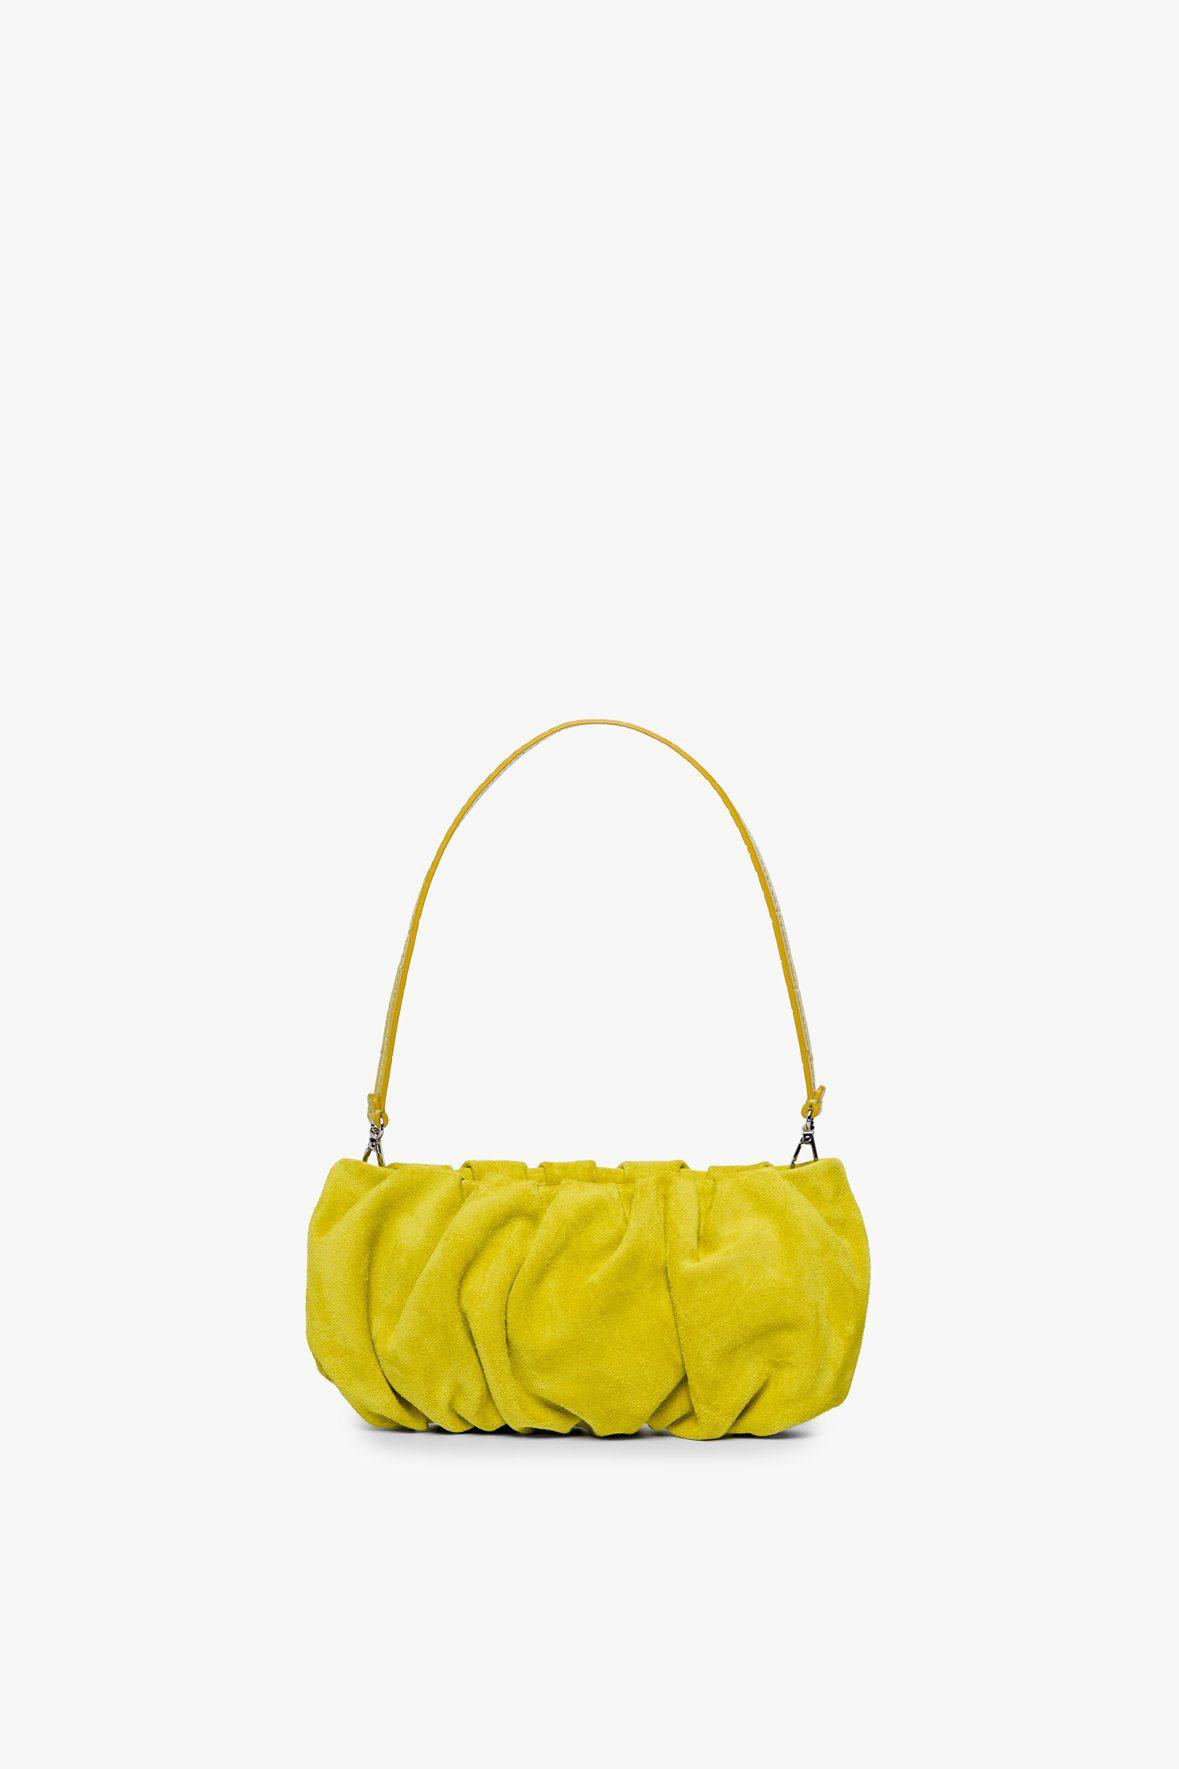 BEAN BAG | CHARTREUSE SUEDE